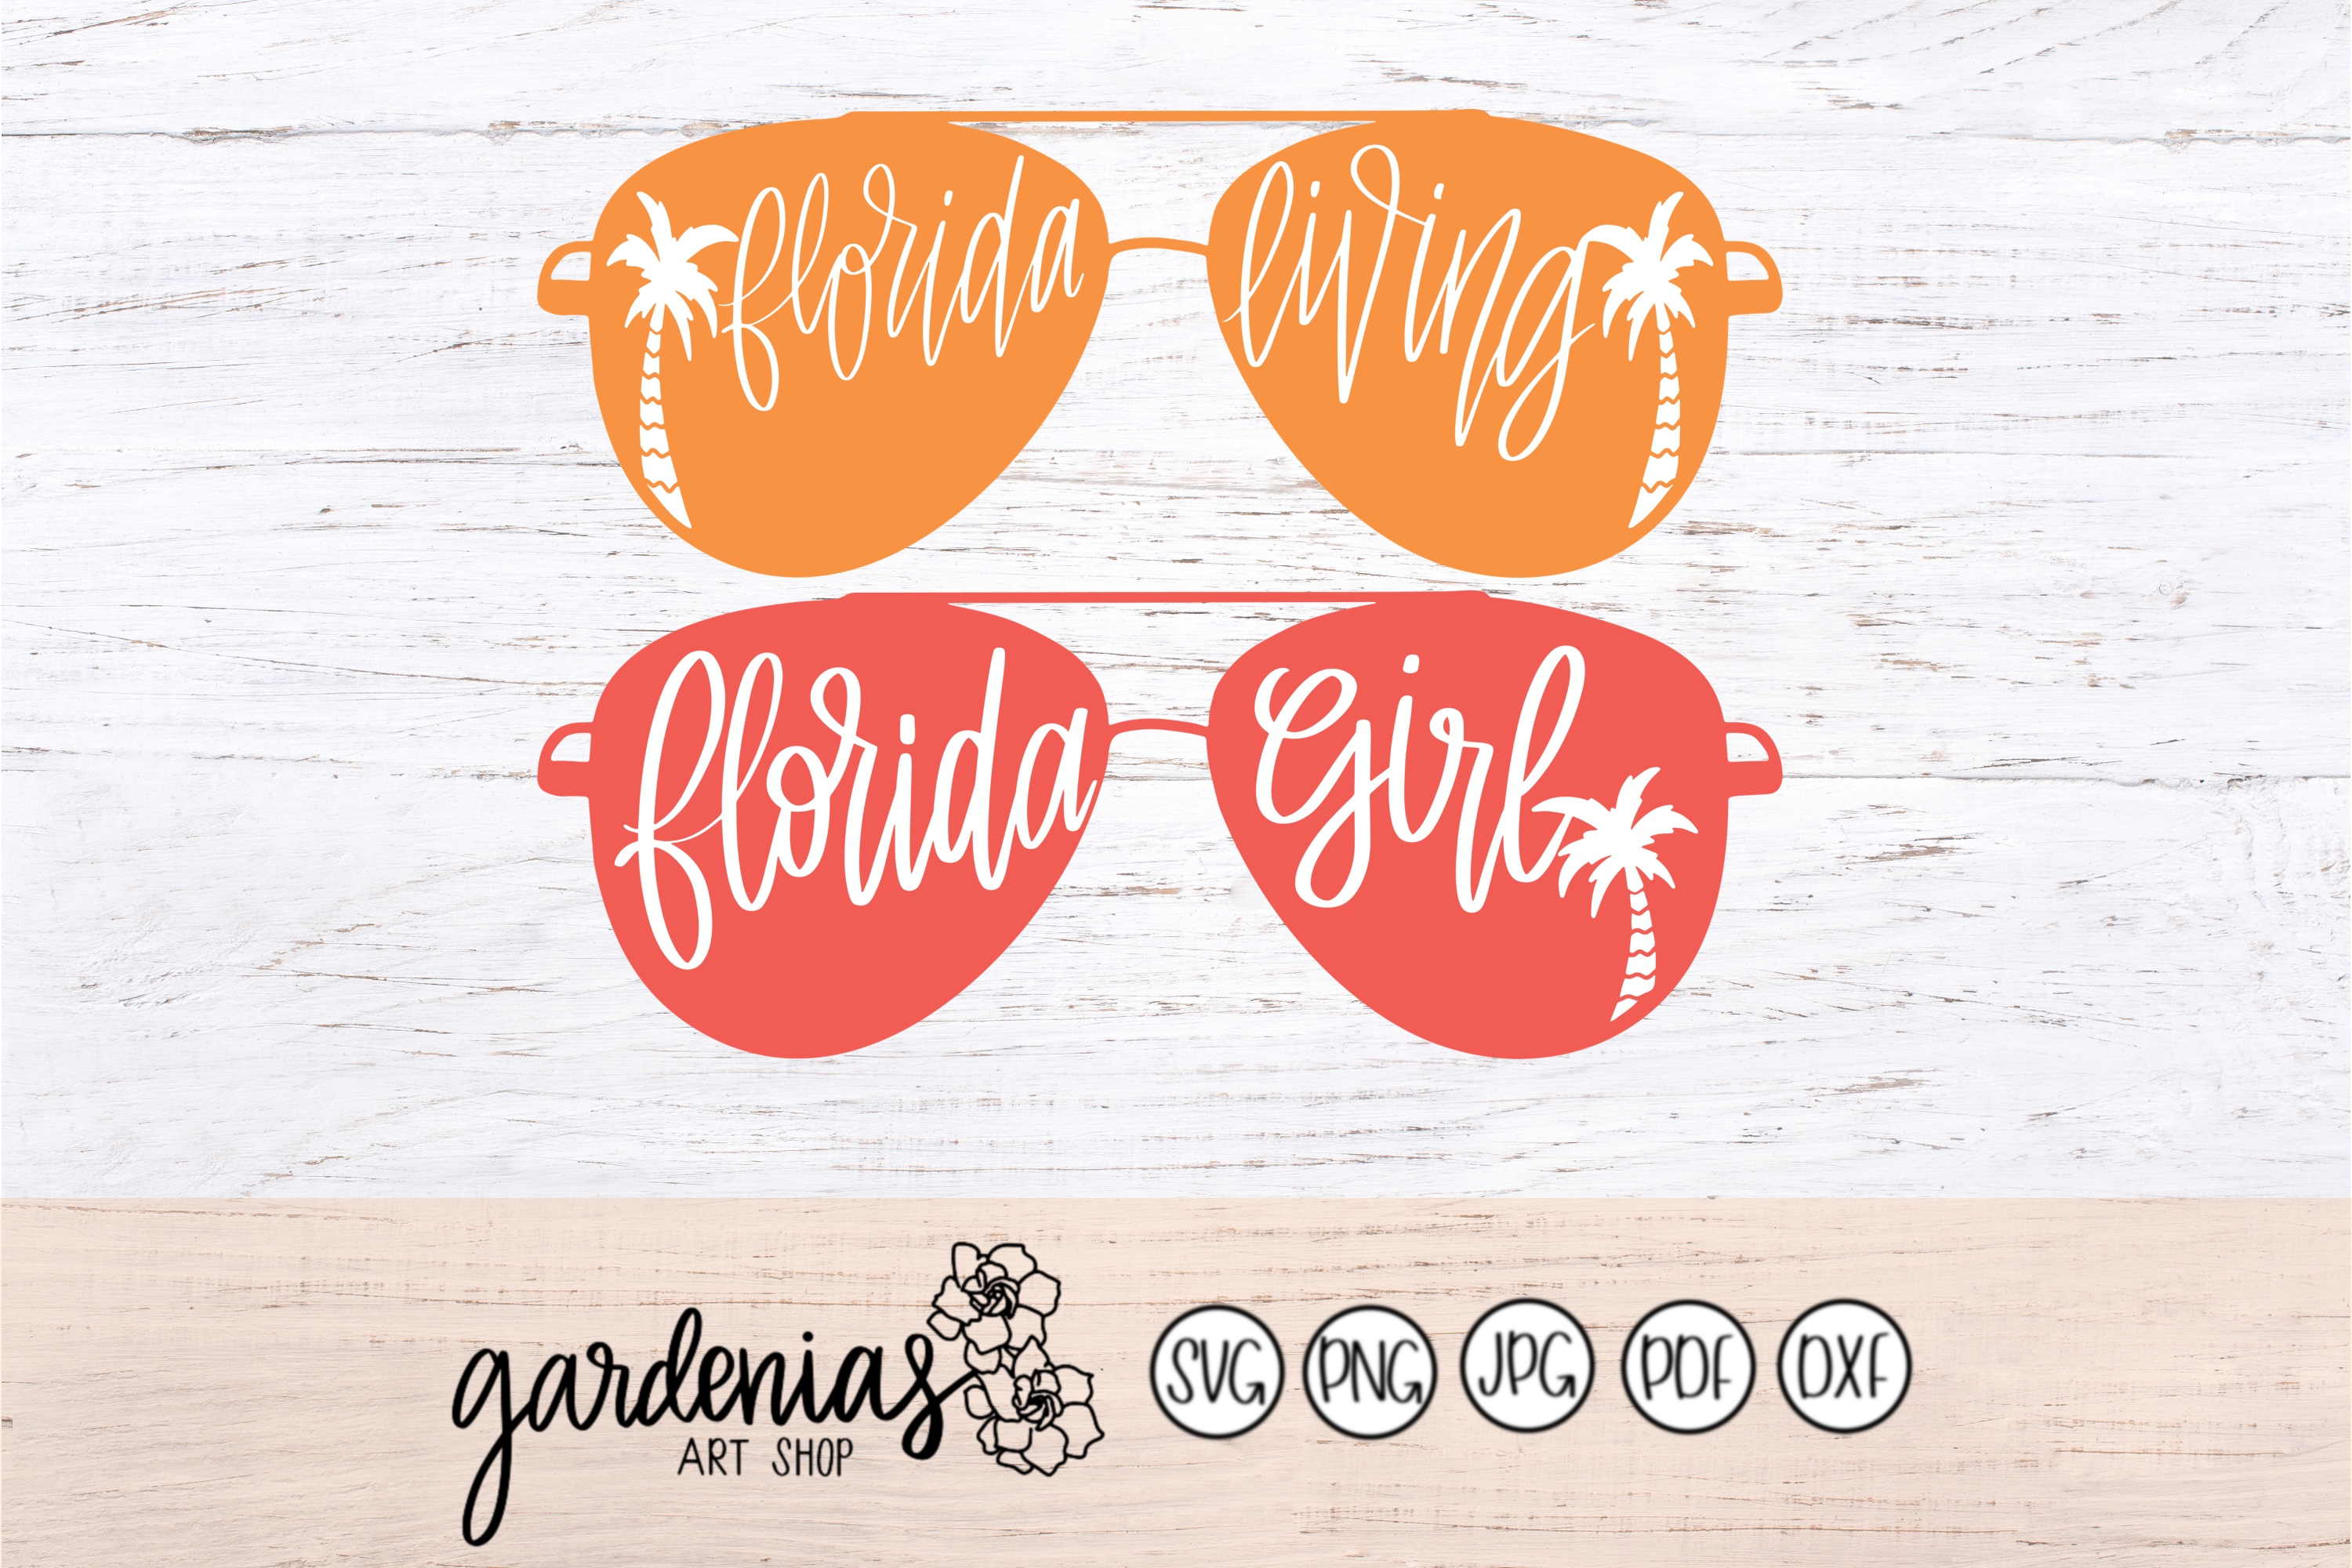 Florida Living Sunglasses / Florida Girl Sunglasses example image 2